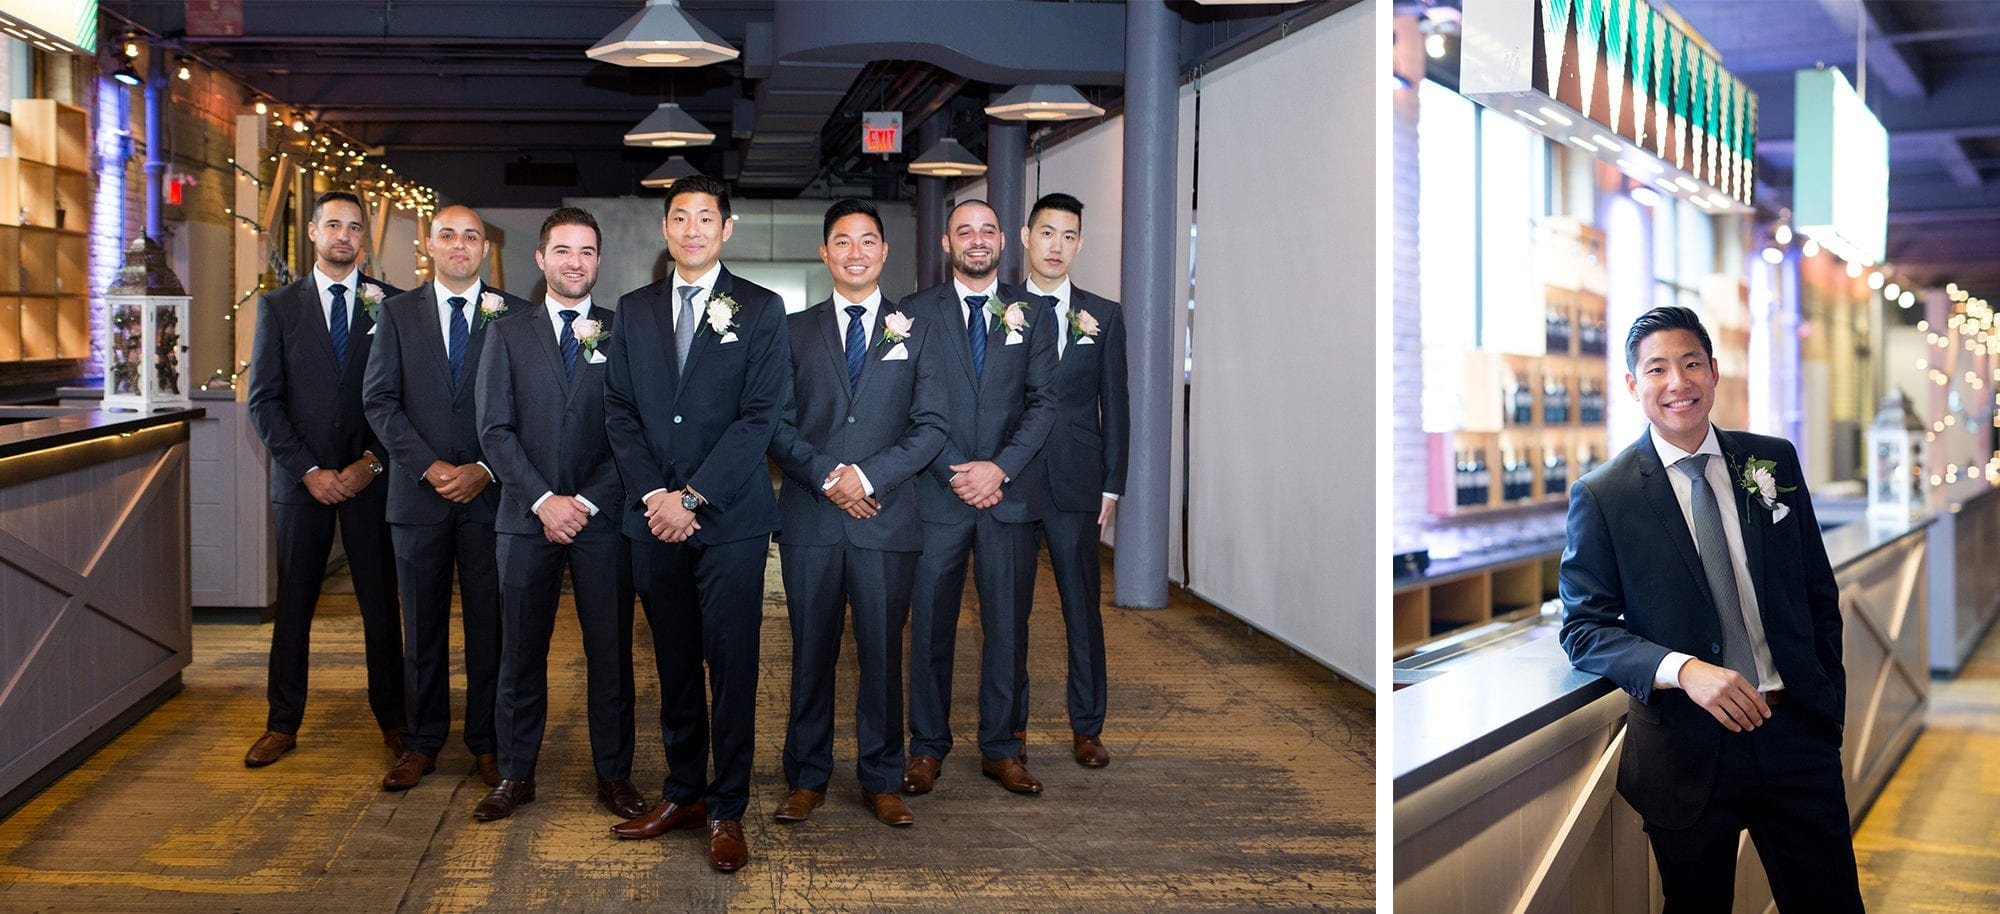 Groom Groomsmen Toronto Wedding Zsuzsi Pal Photography